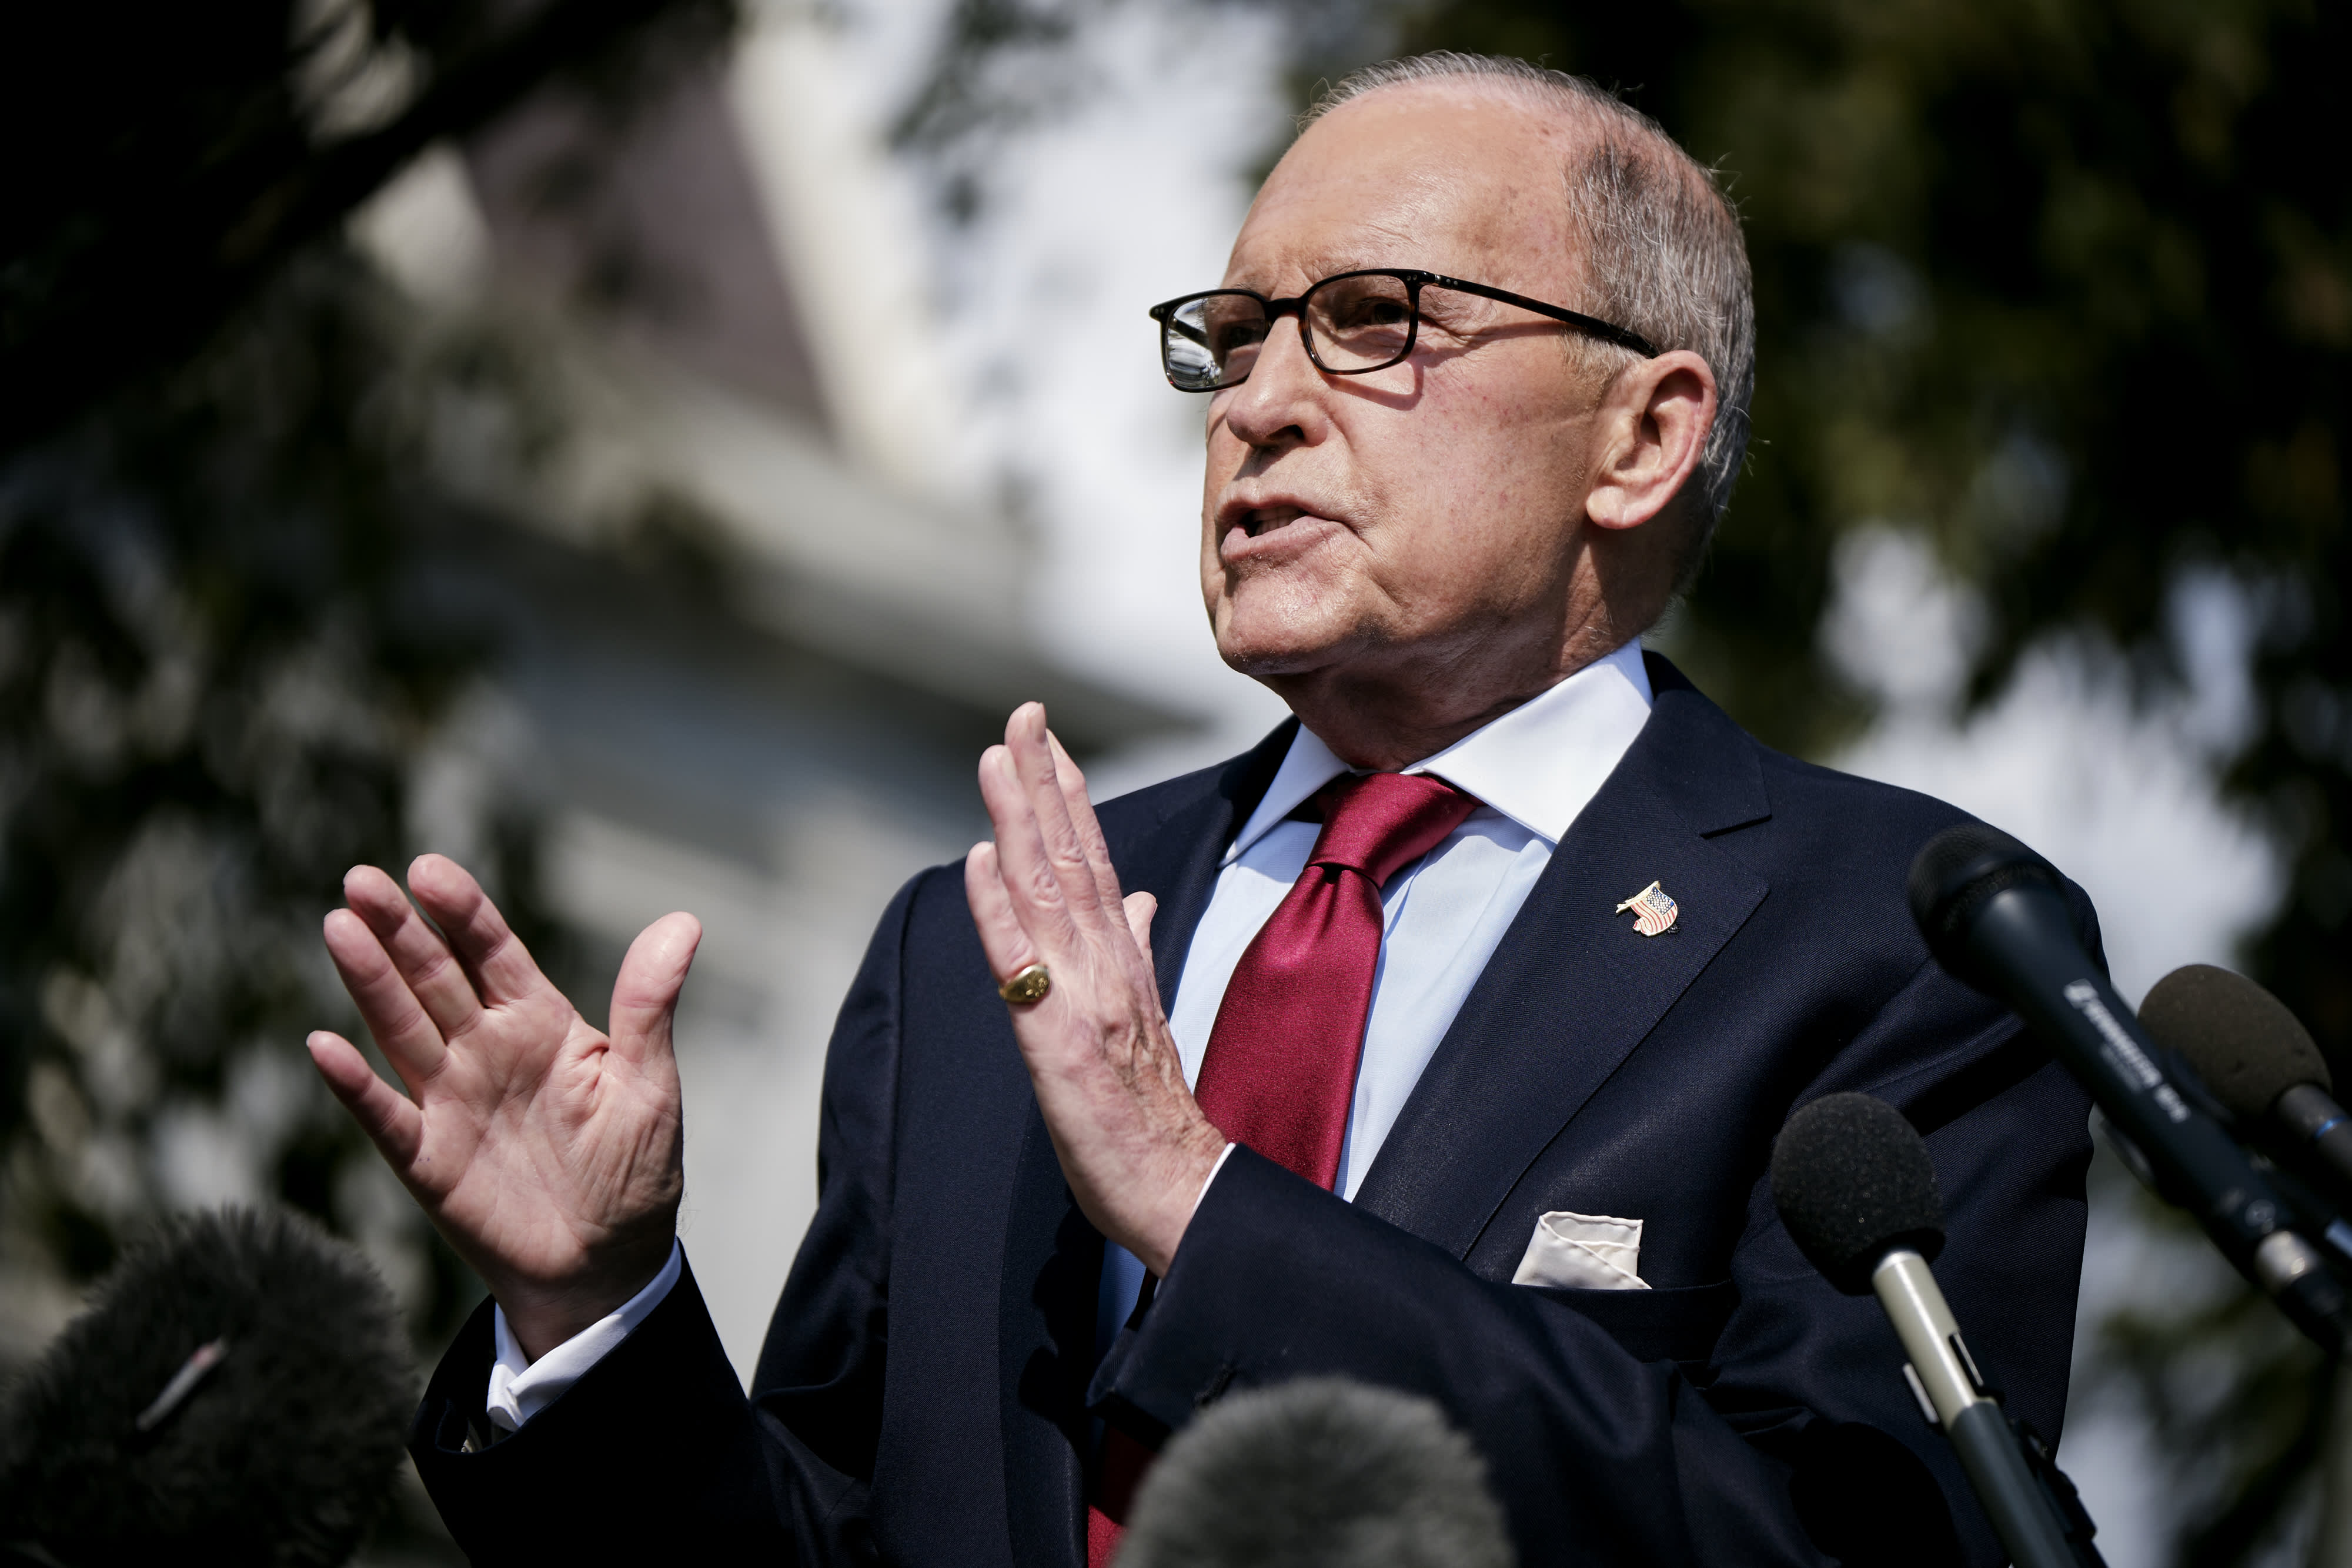 Trump Advisor Kudlow White House Is Looking At Reforms To